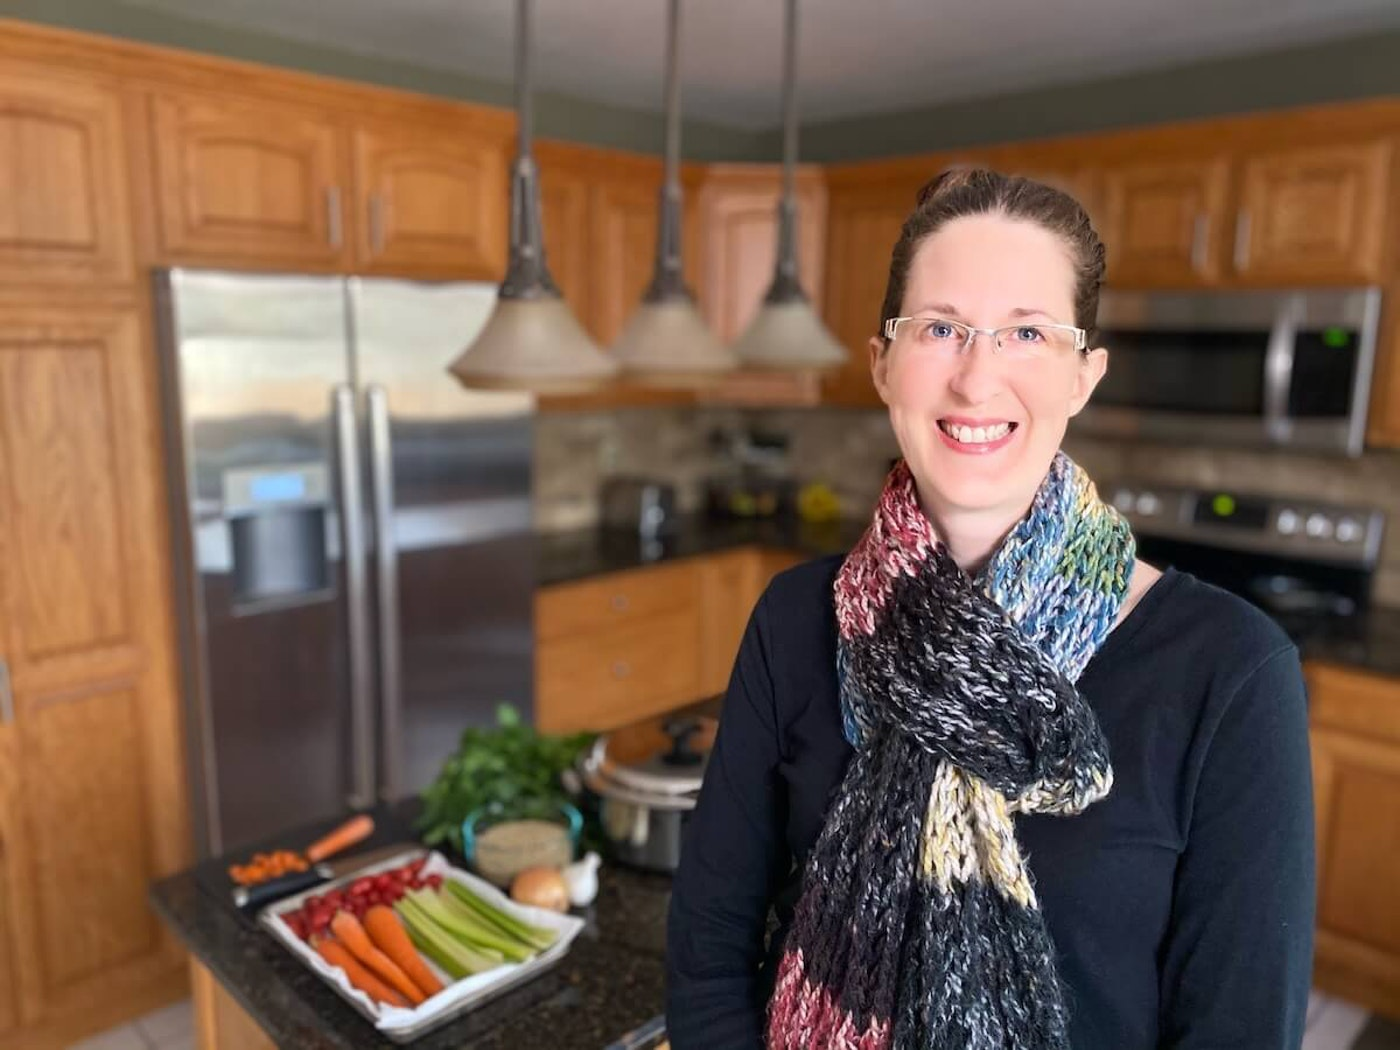 """Jennifer Hafele prepares a meal Wednesday afternoon for an Eau Claire healthcare worker and their family as part of the """"Lessening the Load"""" effort to assist those employees as they deal with the coronavirus pandemic. (Photo courtesy of Jennifer Hafele)"""